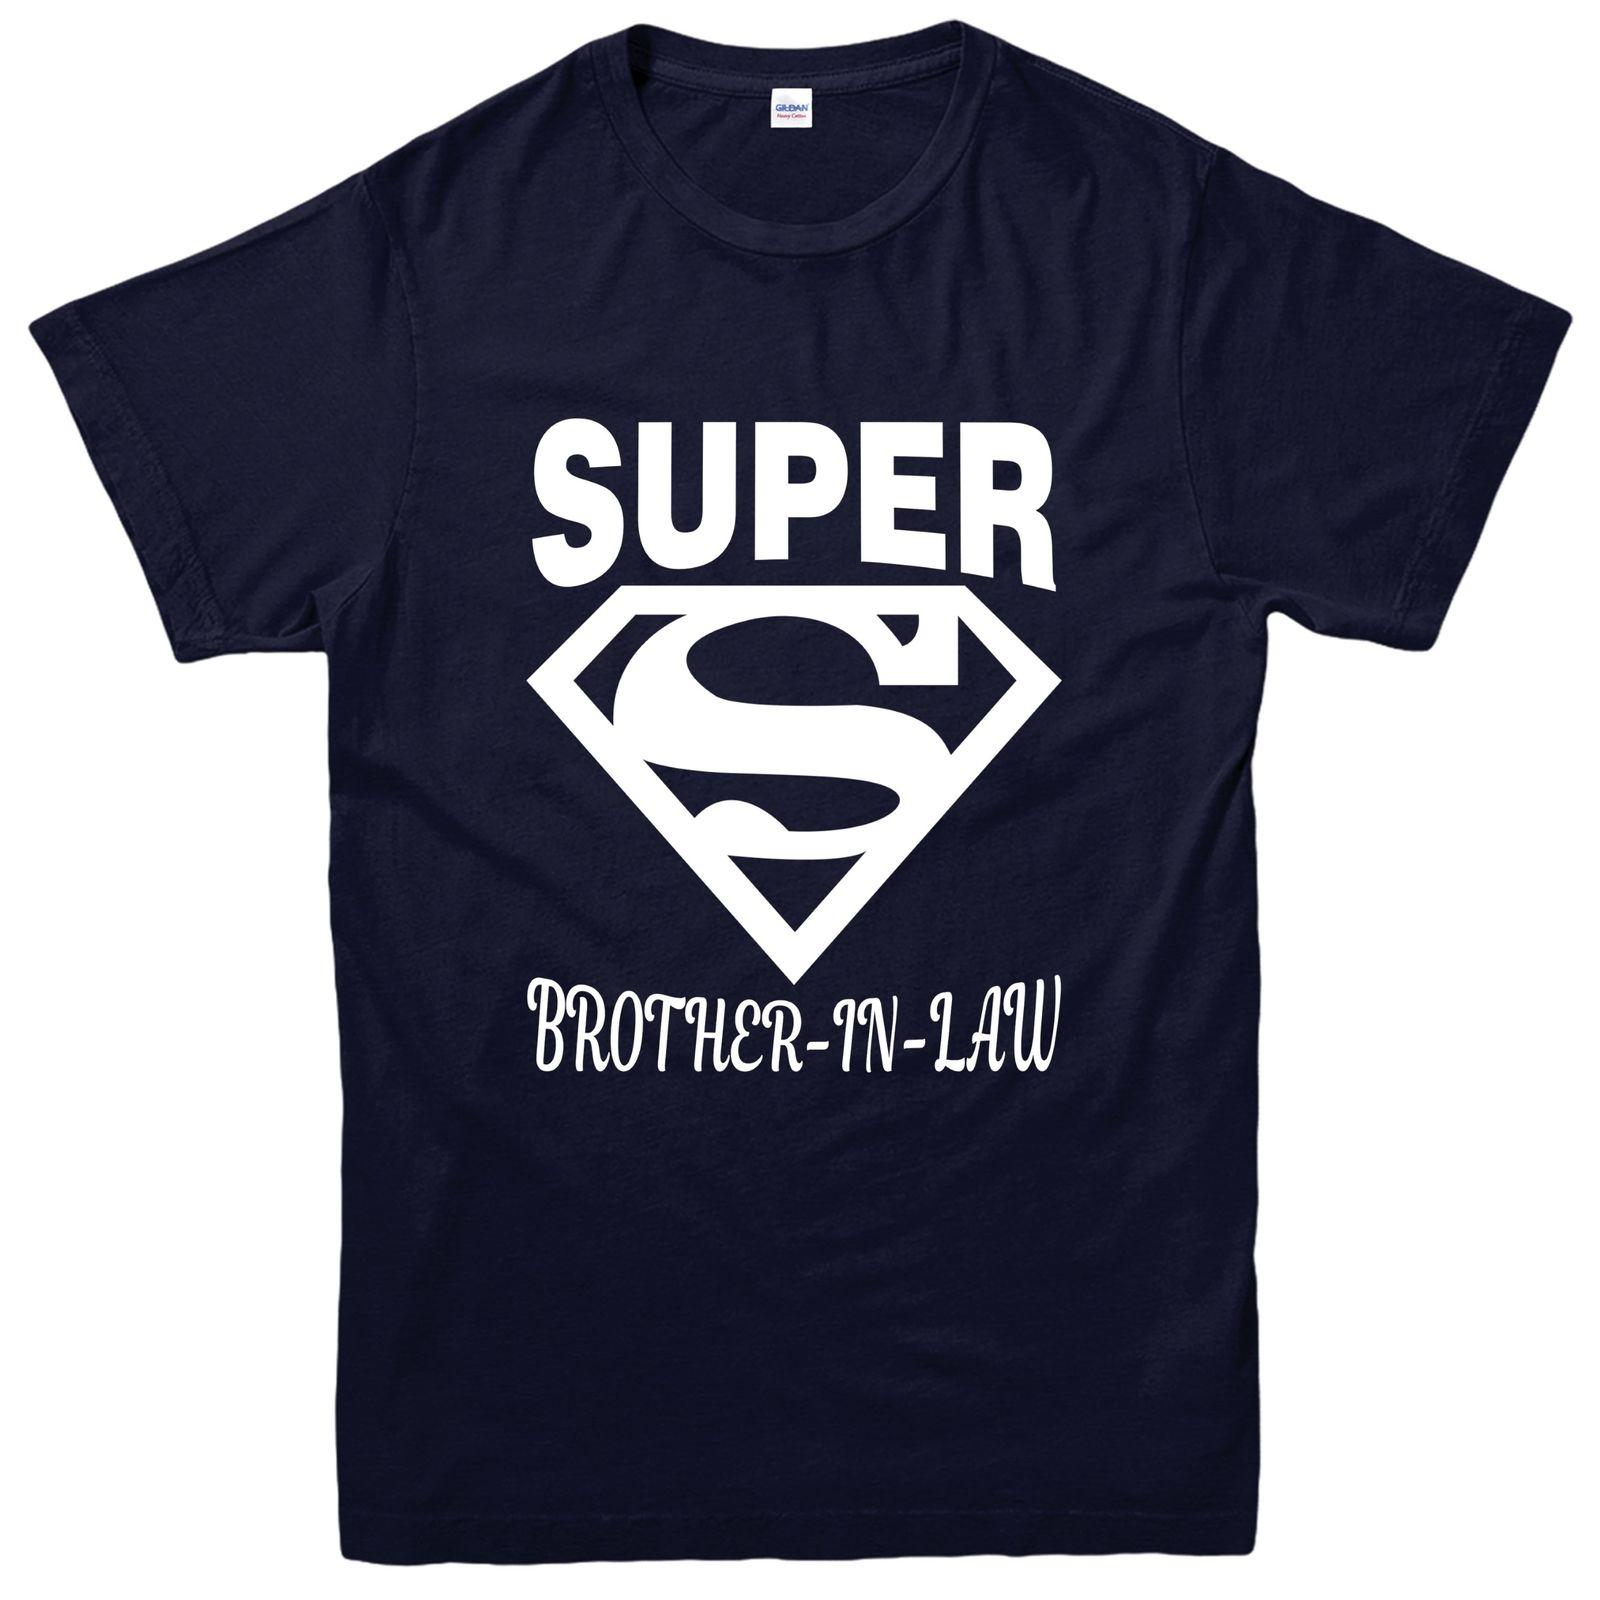 Super Brother In Law T Shirt Birthday Gift Diamond Love Inspired Design Tee TopFunny Unisex Casual All Shirts Ridiculous From Trendsspace